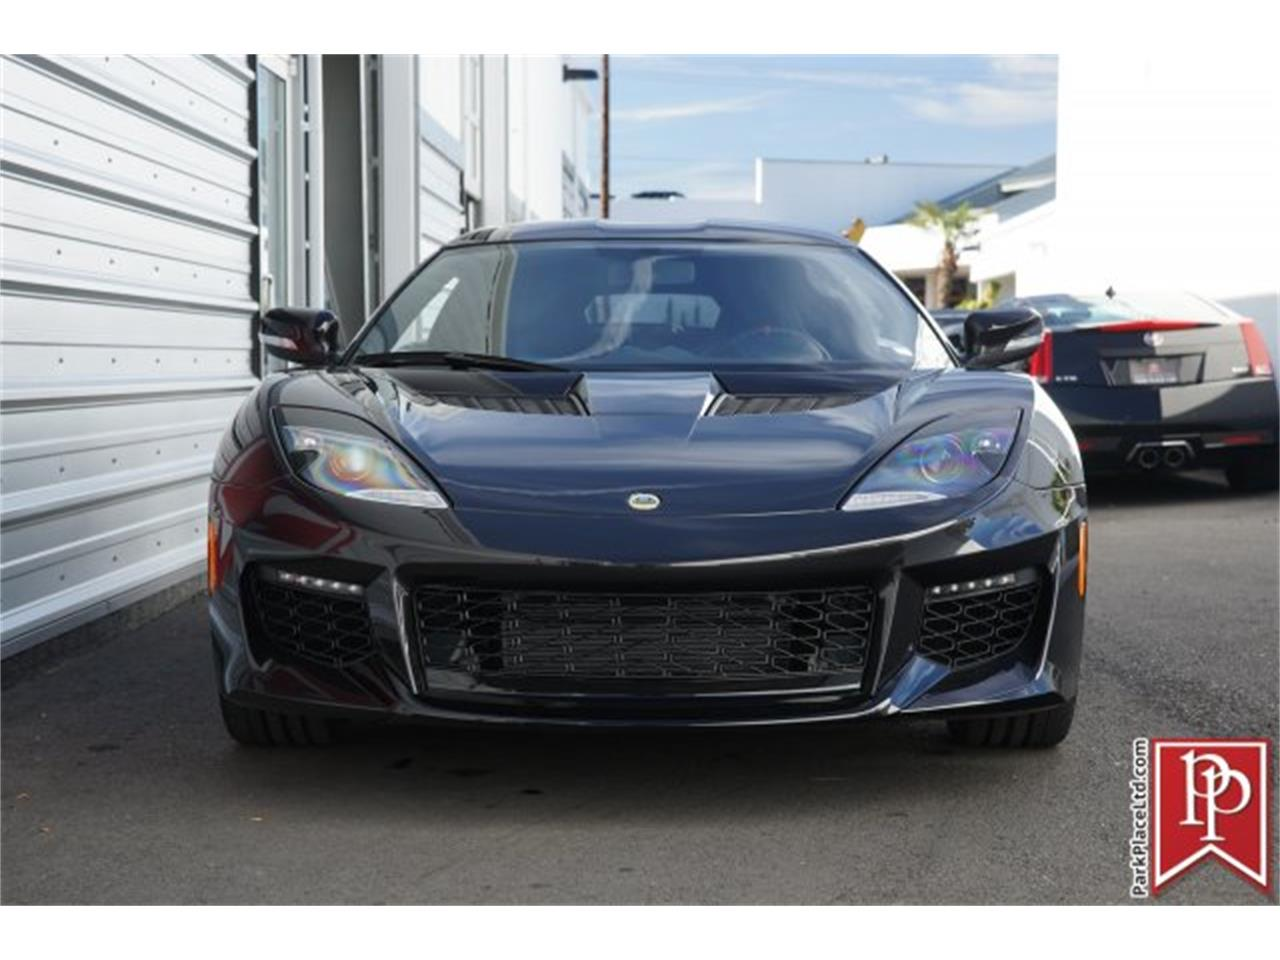 Large Picture of 2017 Lotus Evora located in Bellevue Washington - $77,950.00 - PZ1G